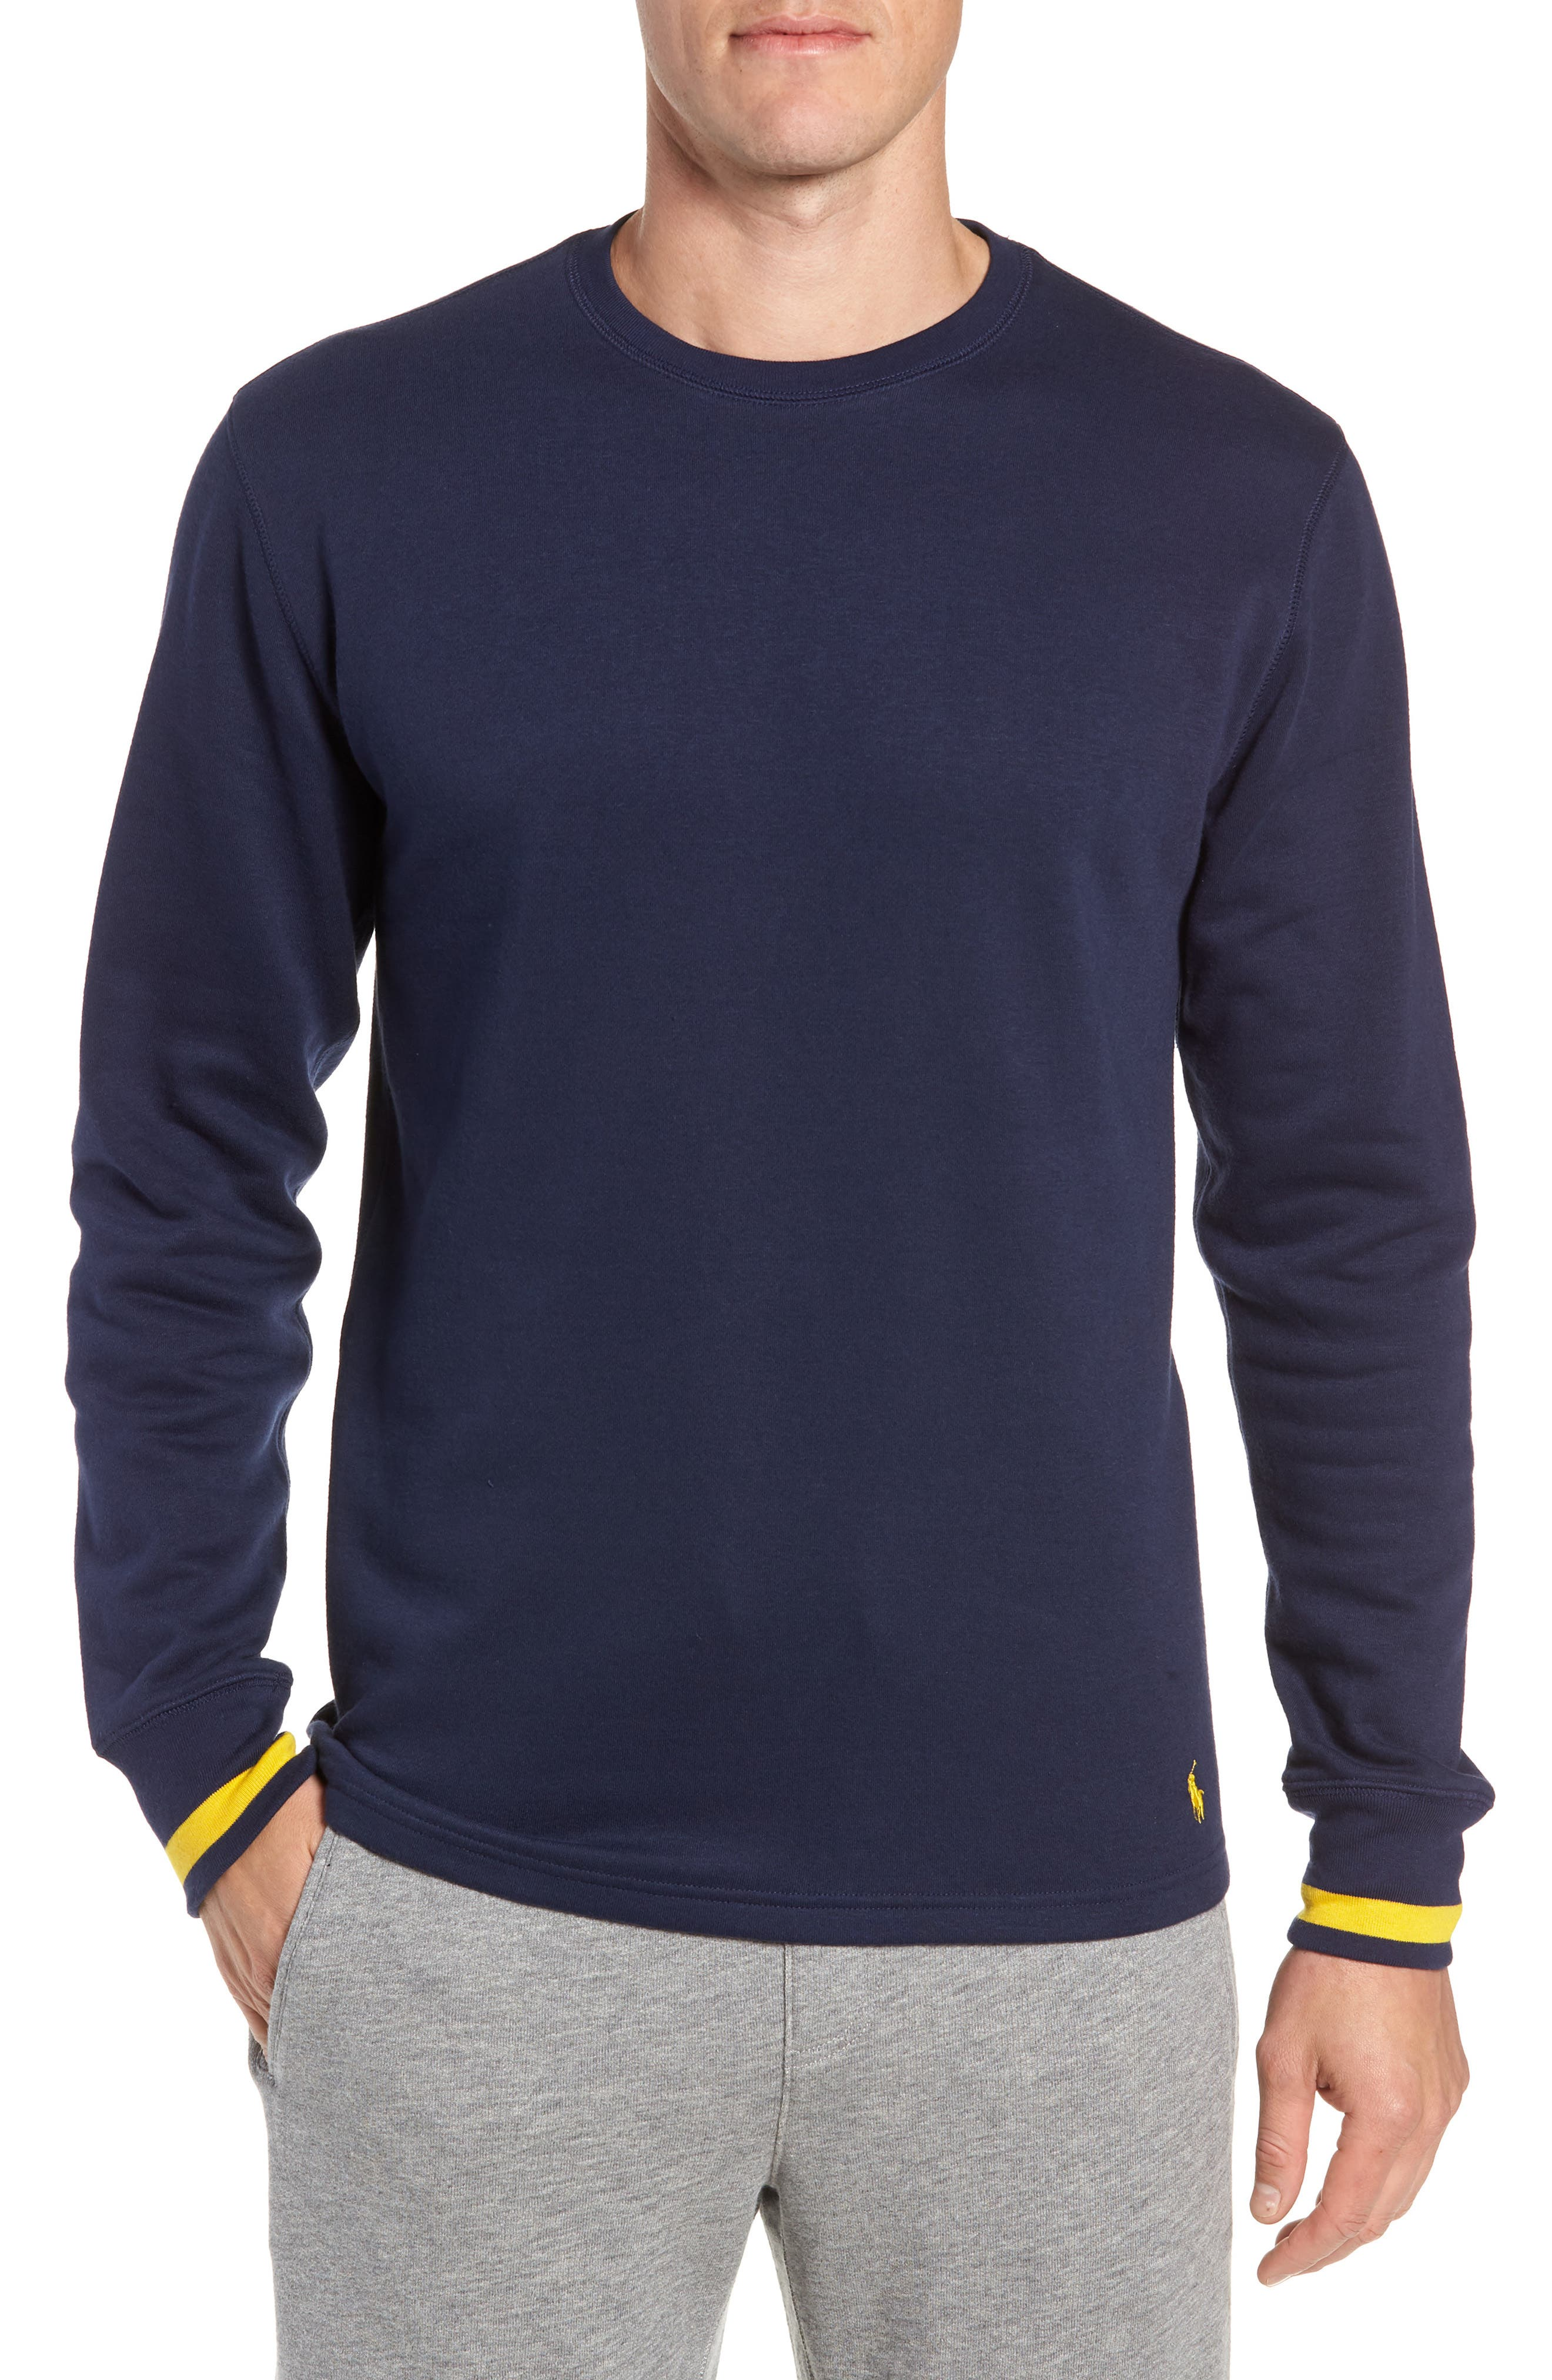 POLO RALPH LAUREN, Brushed Jersey Cotton Blend Crewneck Sweatshirt, Main thumbnail 1, color, CRUISE NAVY